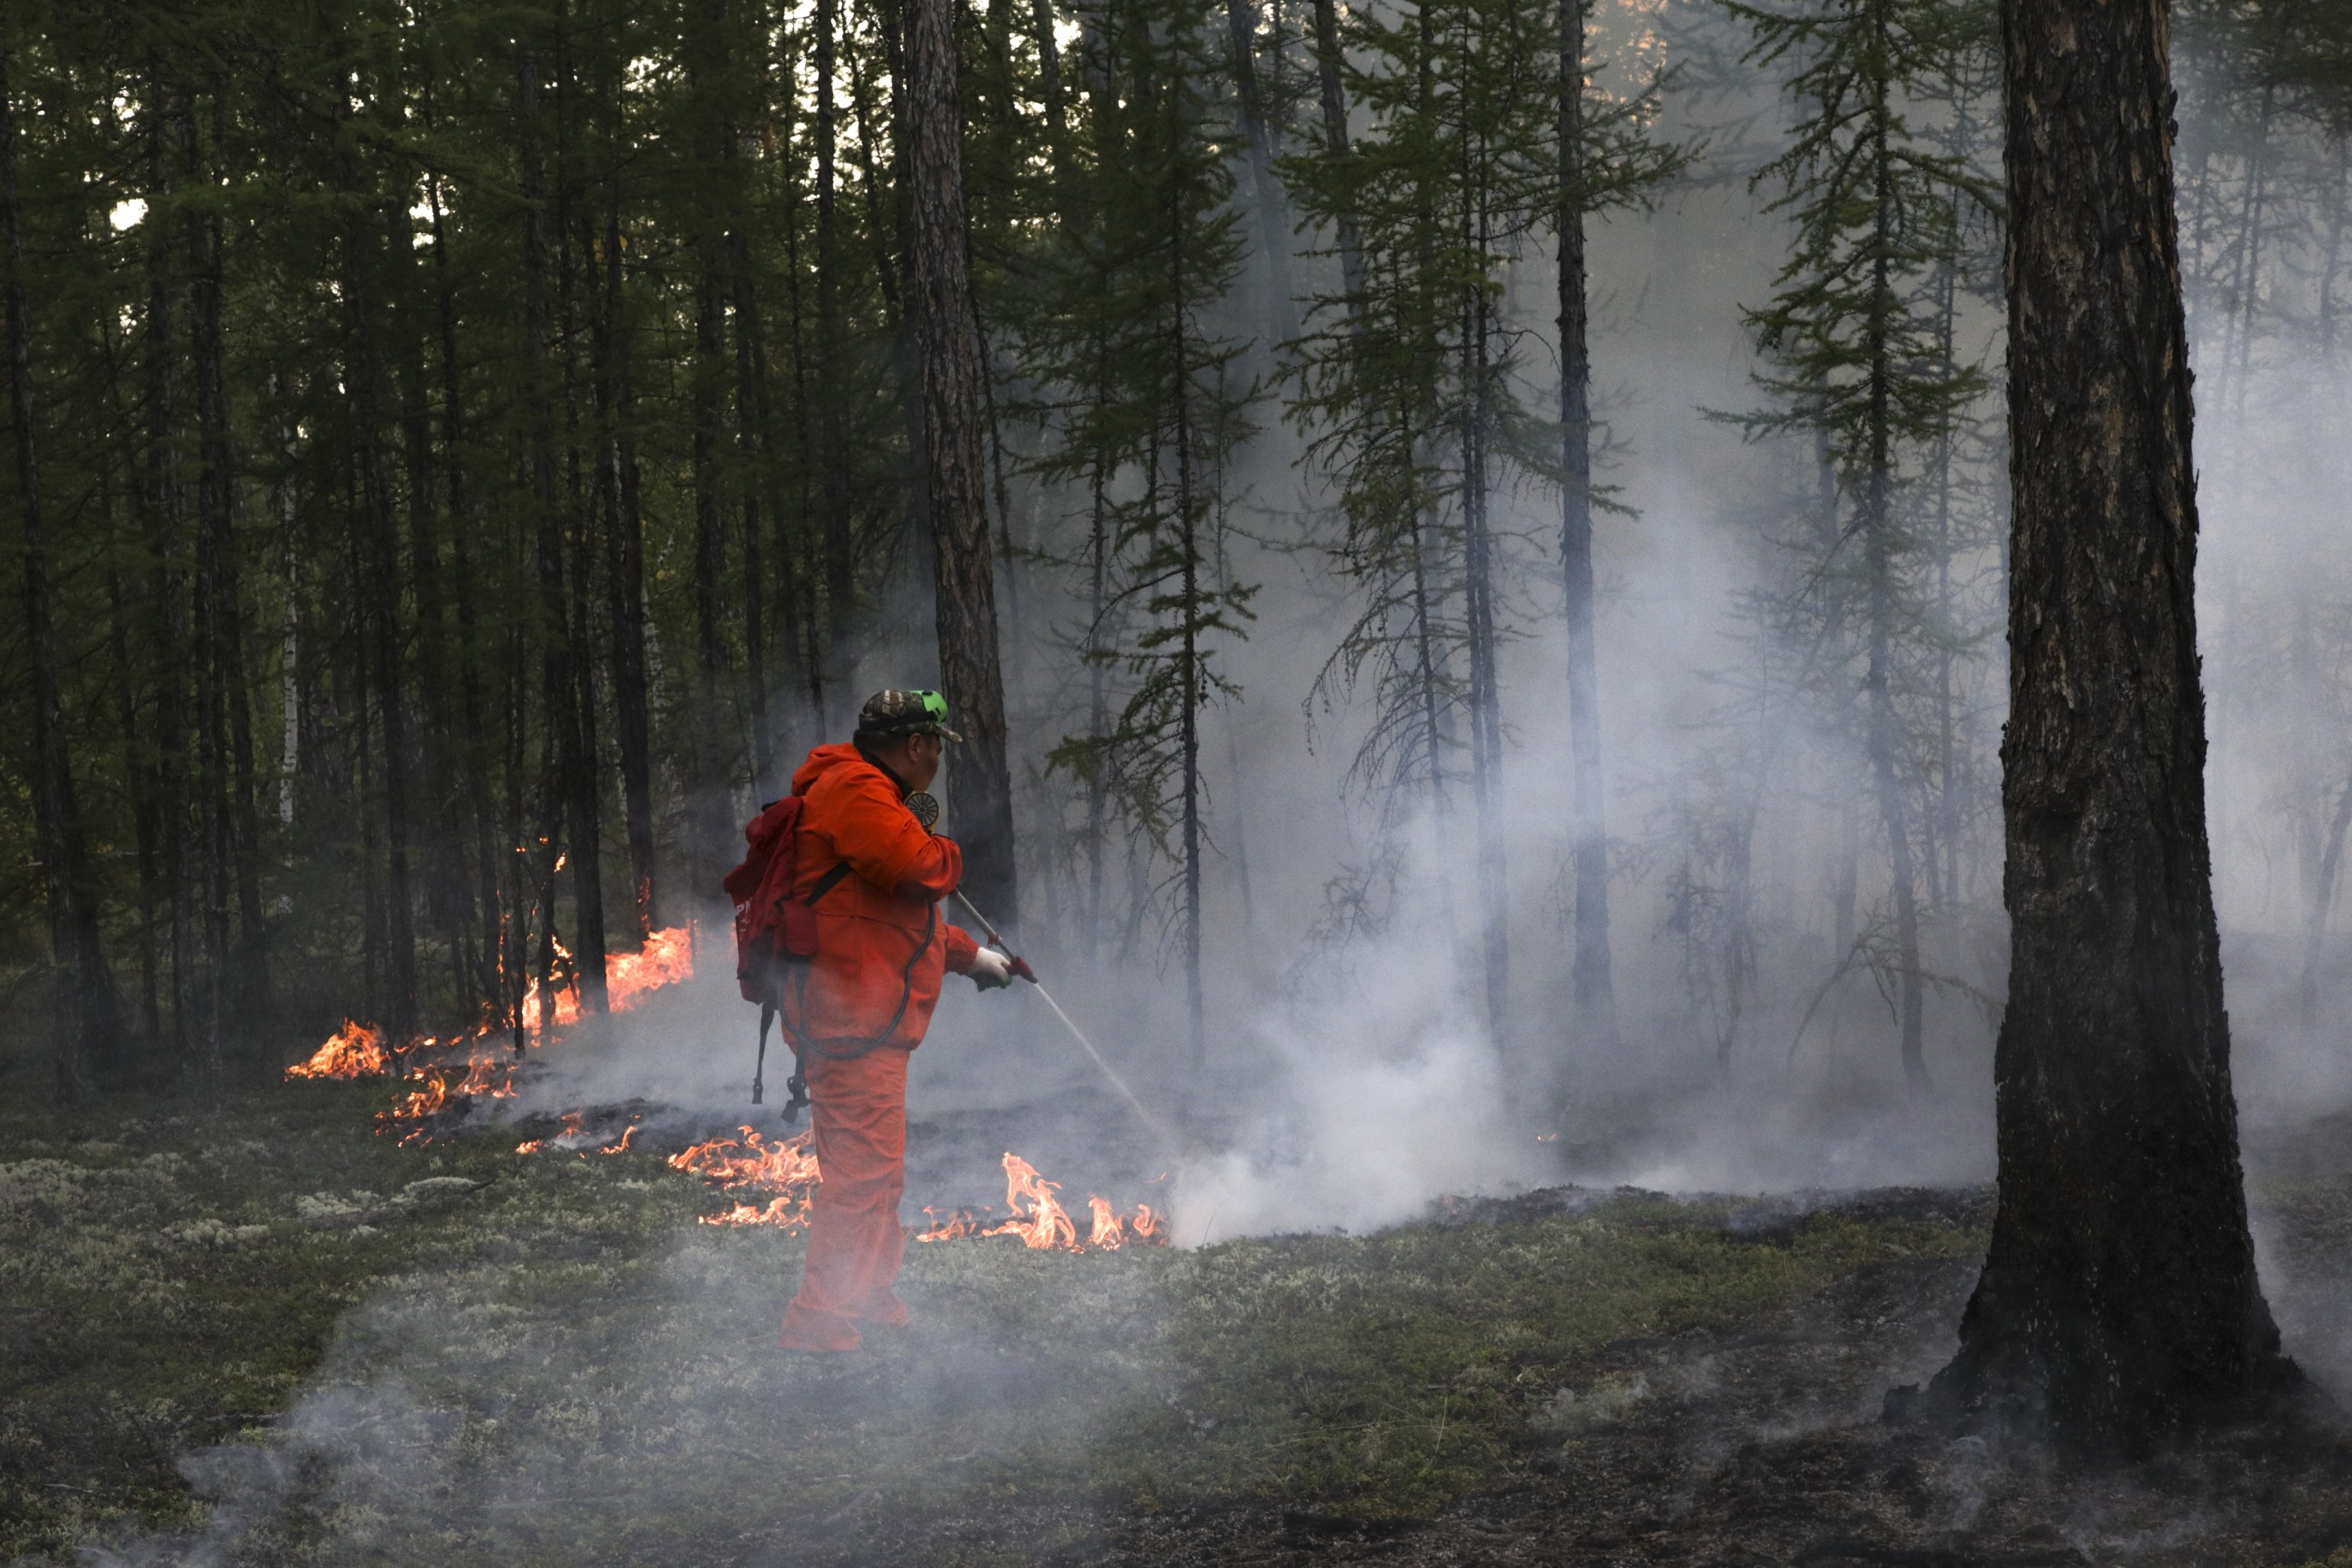 Firefighters and volunteers work at the scene of a forest fire near Magan village in Yakutsk region, republic of Sakha, far east Russia, Aug. 10, 2021. (AP Photo)